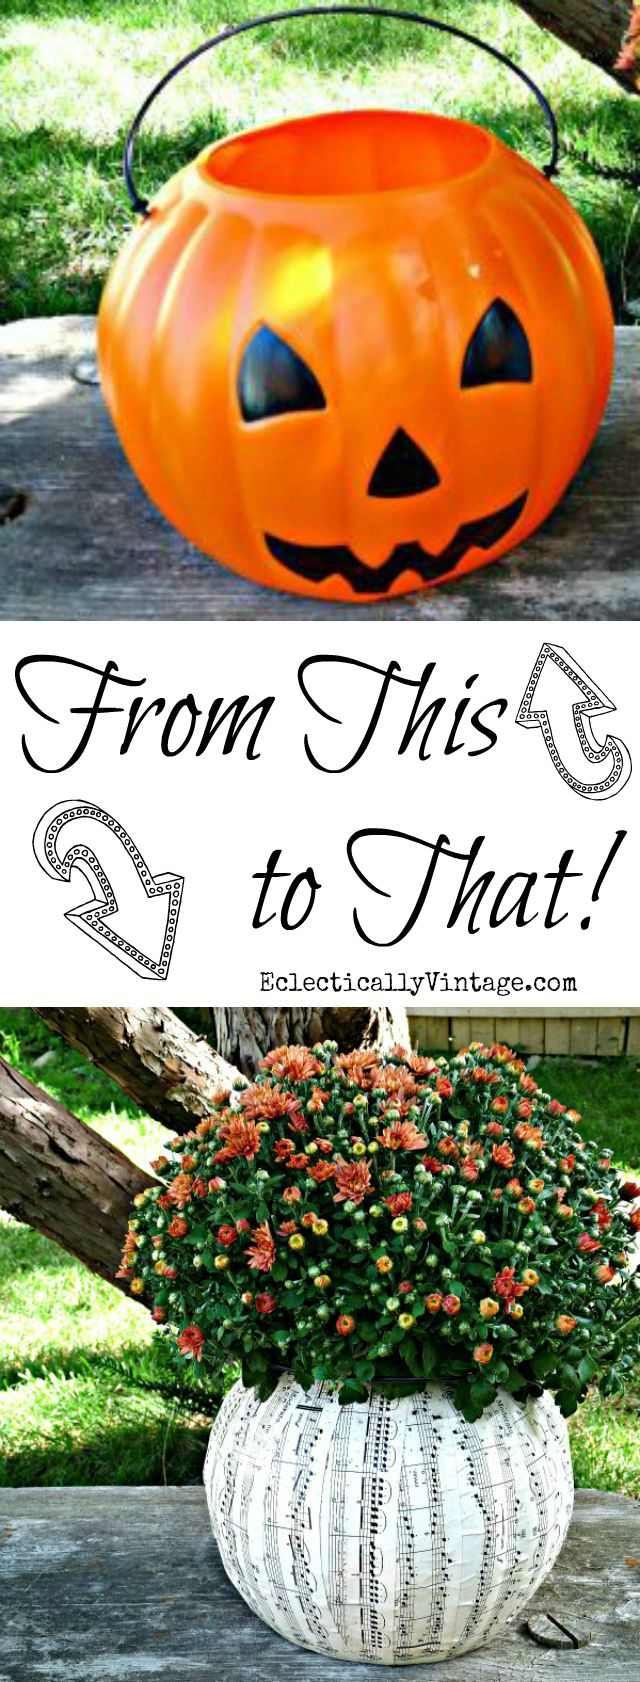 Plastic Pumpkin Ideas - turn an ugly plastic pumpkin pail into a fun planter - step by step directions eclecticallyvintage.com